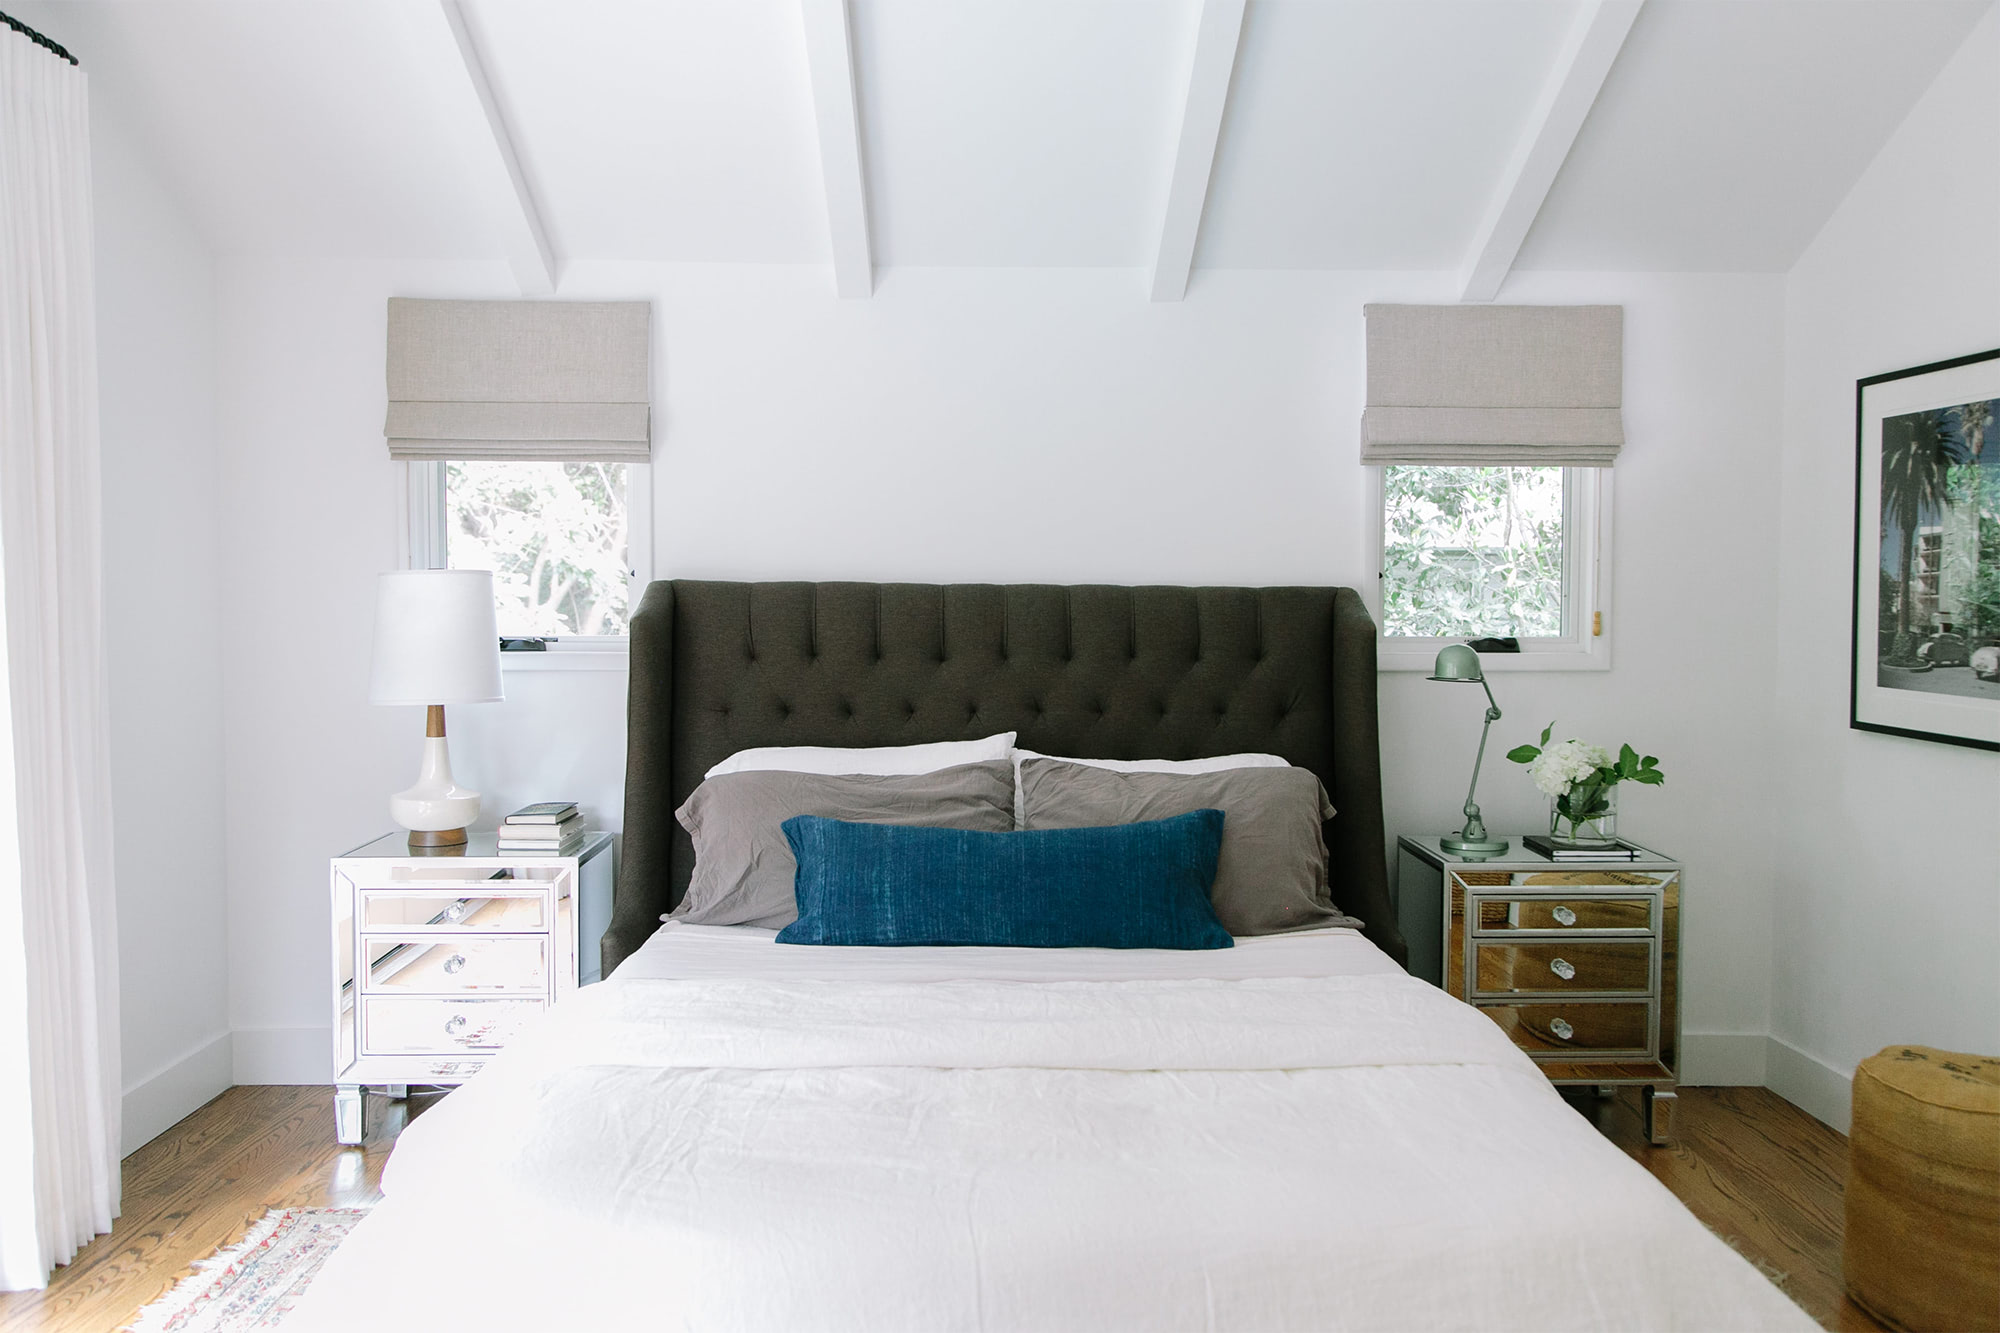 A master bedroom feels expansive with white walls, neutral bedding and off-white Roman shades